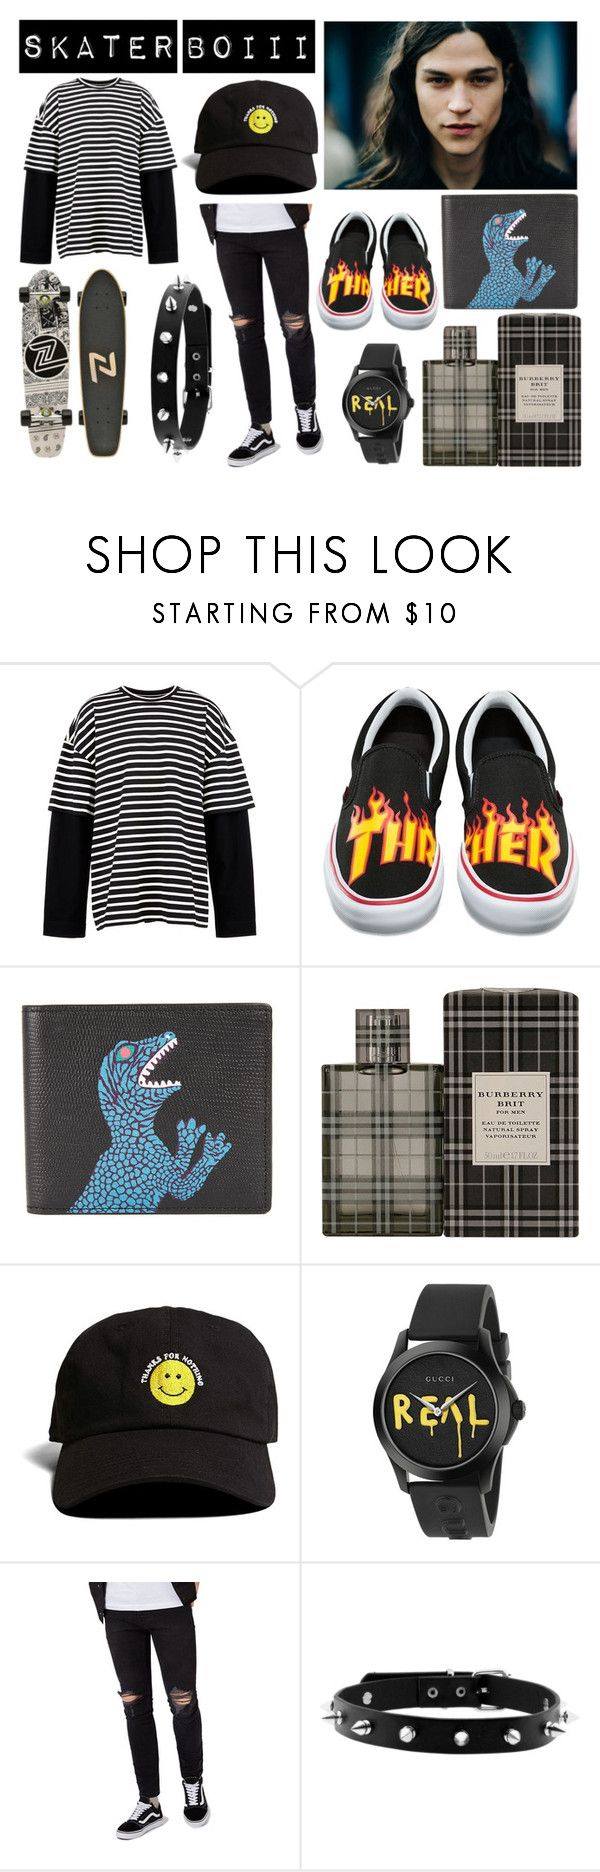 """skater boiii"" by zomxbiee ❤ liked on Polyvore featuring Juun.j, Vans, PS Paul Smith, Burberry, 21 Men, Gucci, Topman, men's fashion and menswear"